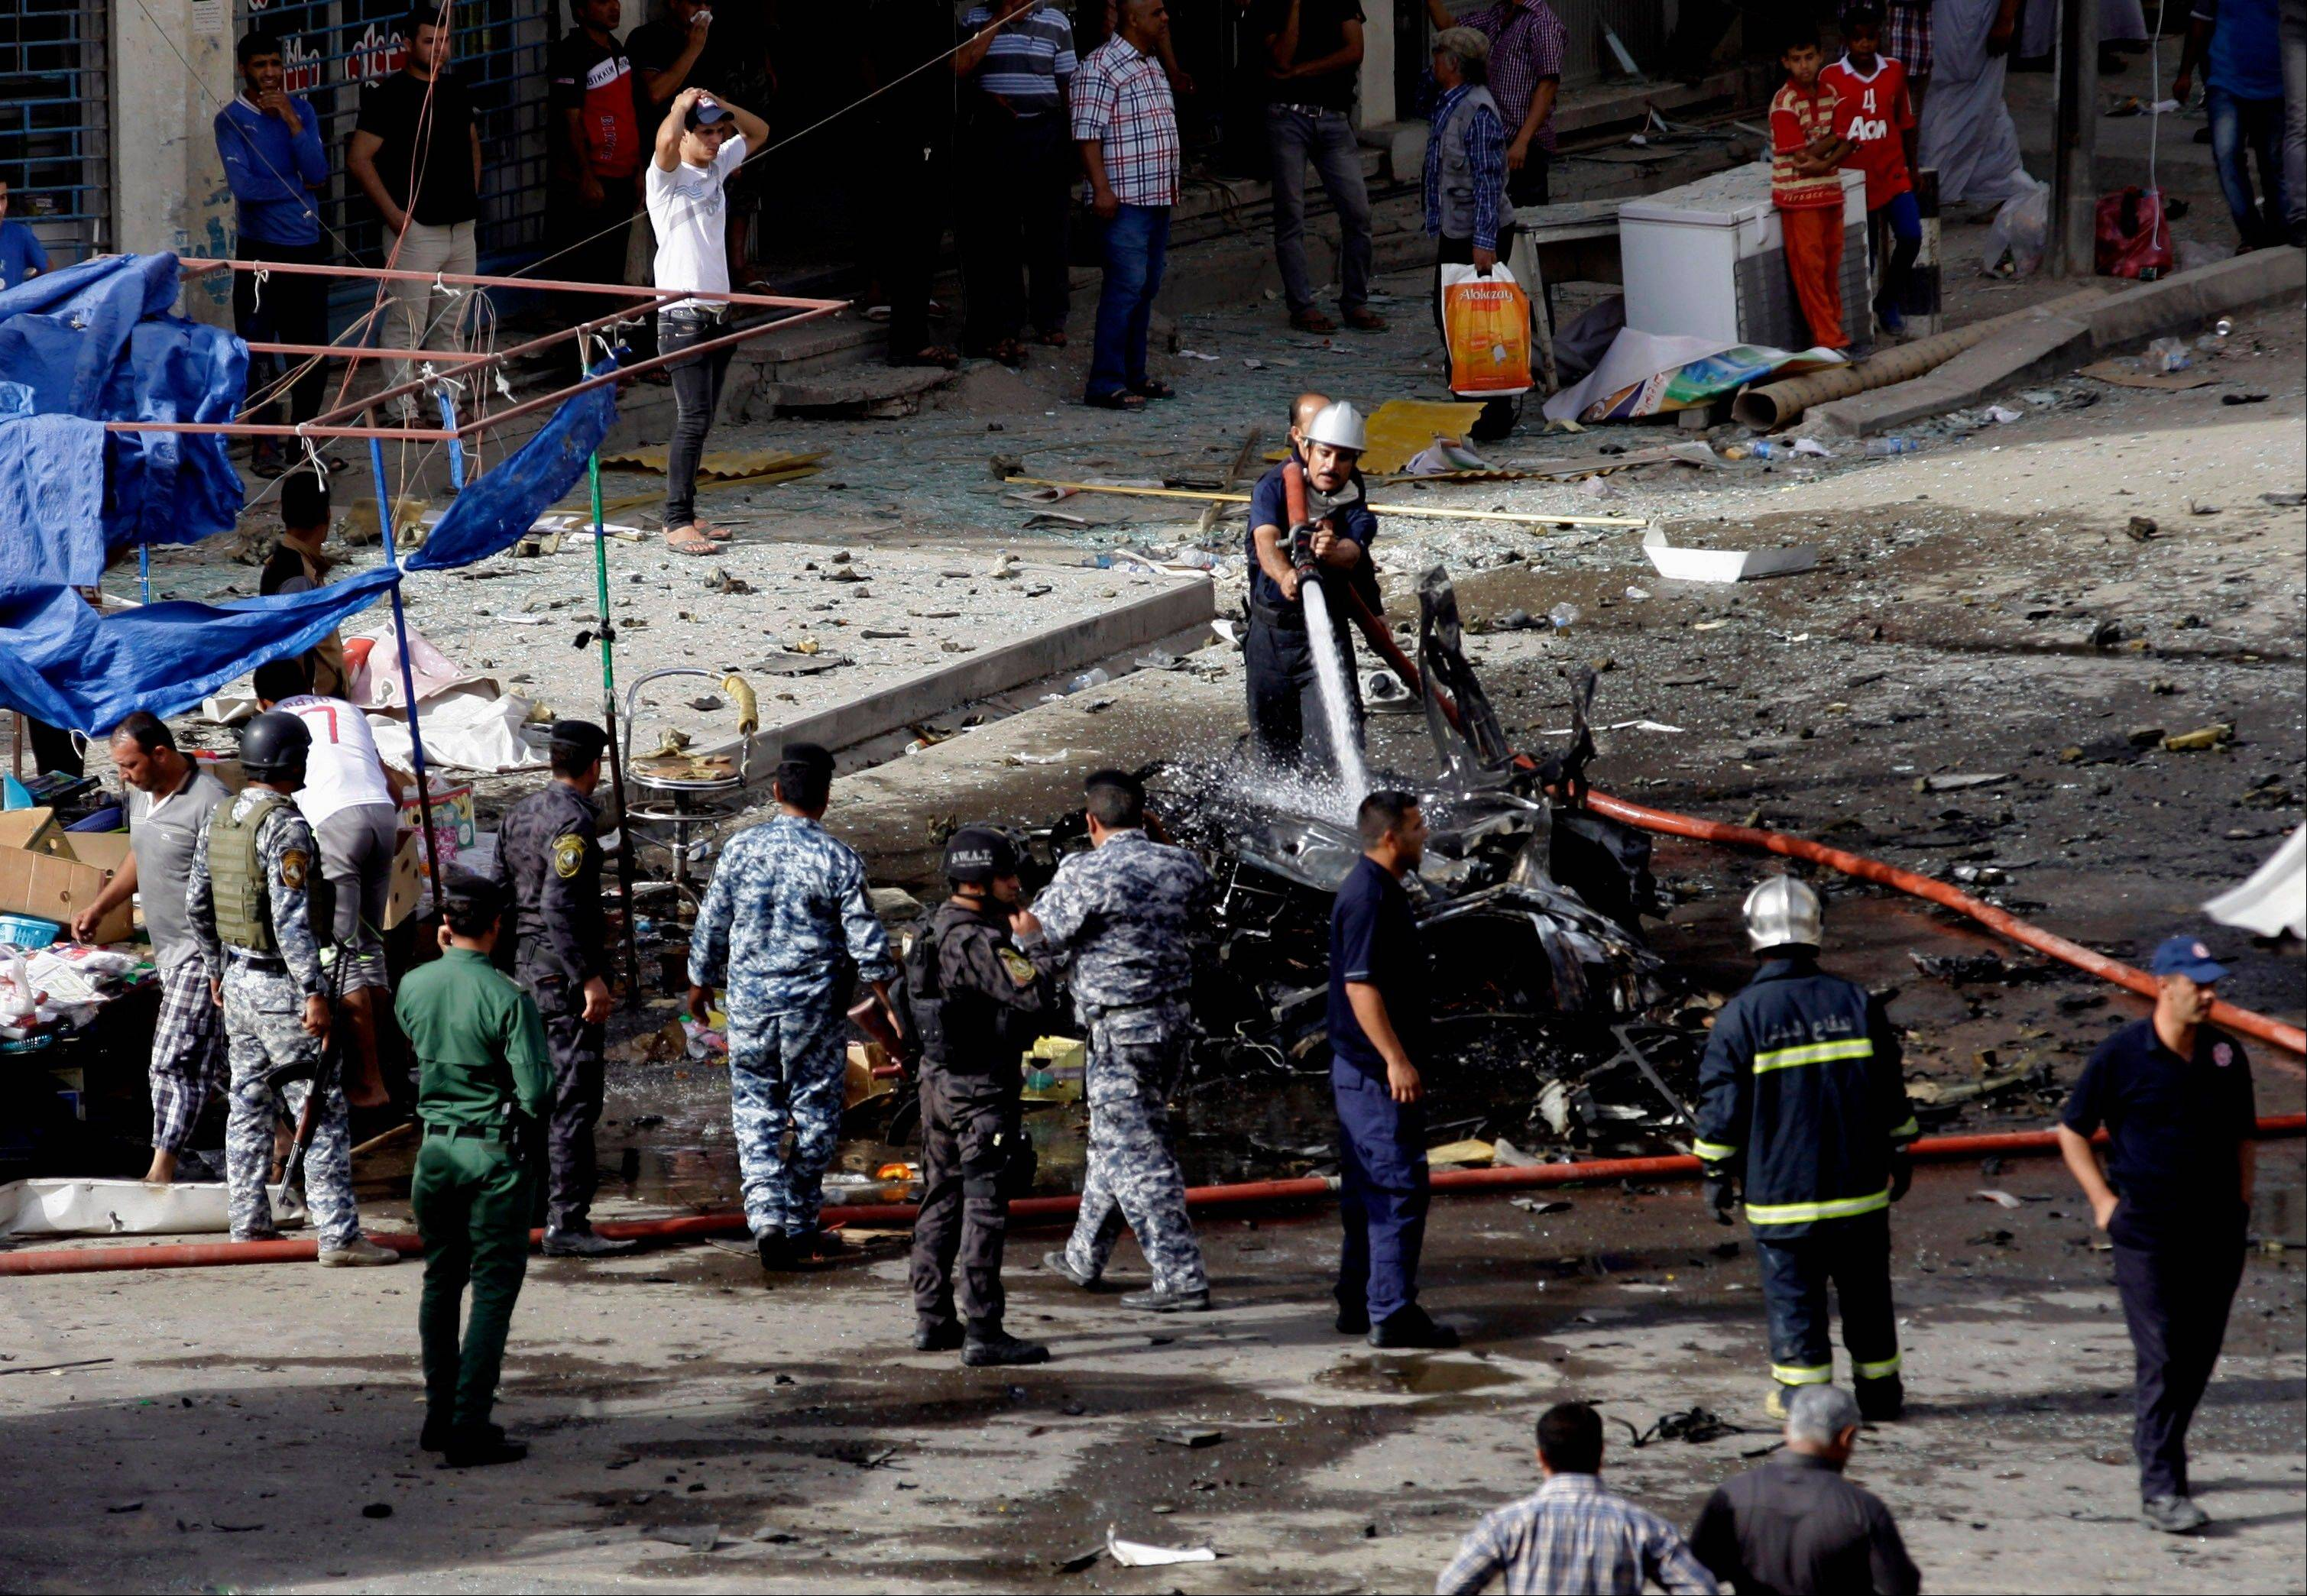 Security forces inspect the scene of a car bomb attack in the Baghdad, Iraq, Monday, May 27, 2013. A parked car bomb explosion in the busy commercial Sadoun Street in central Baghdad, killed and wounded scores of people, police said.